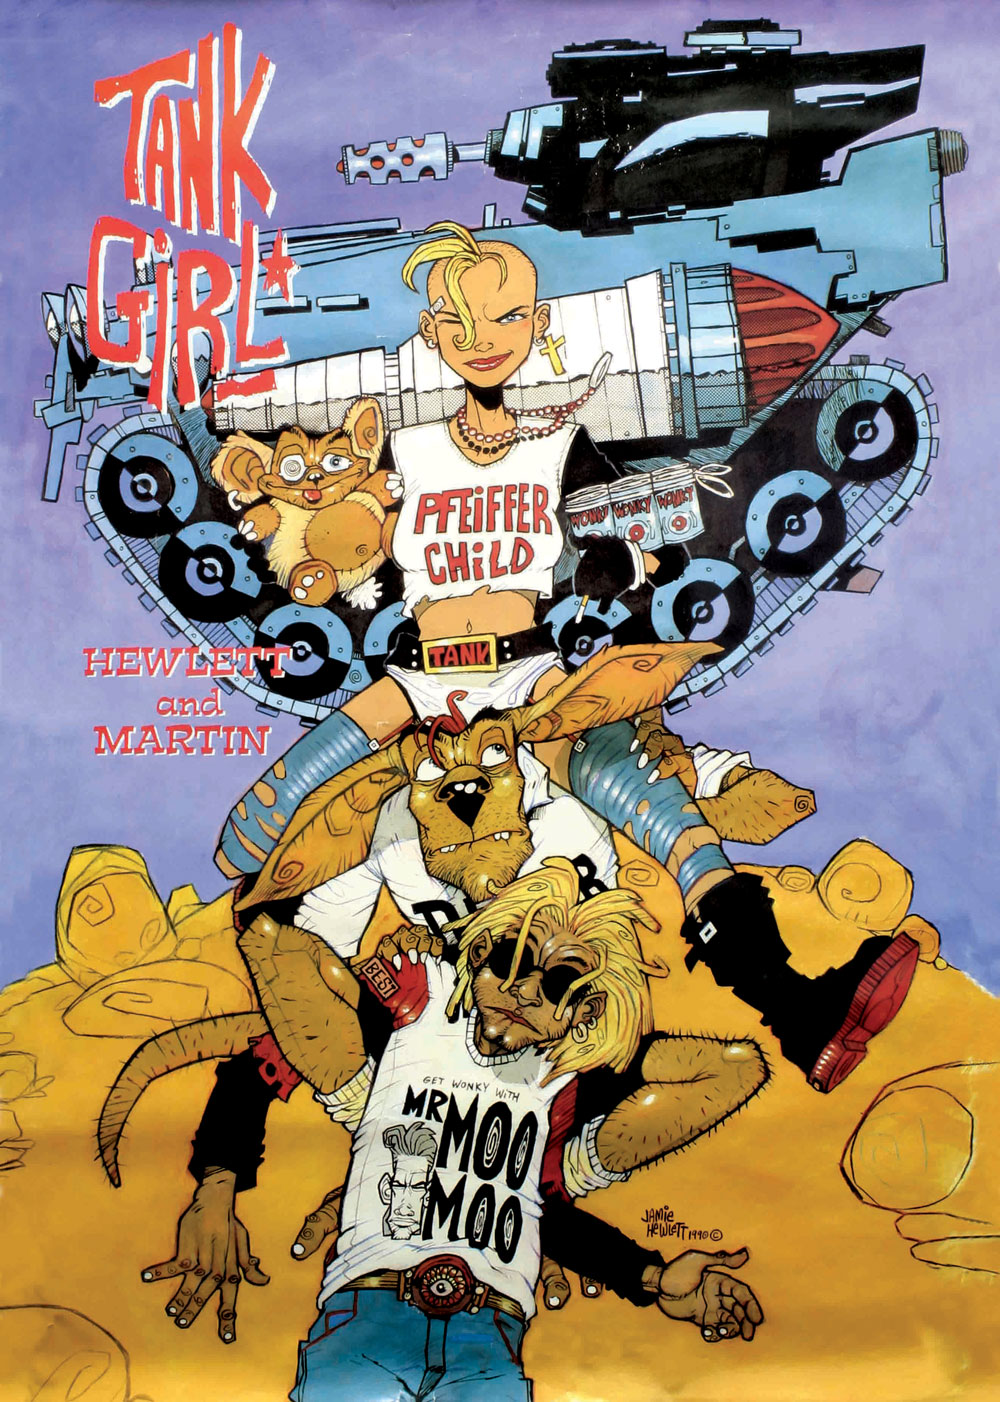 Tank Girl comic, by Jamie Hewlett